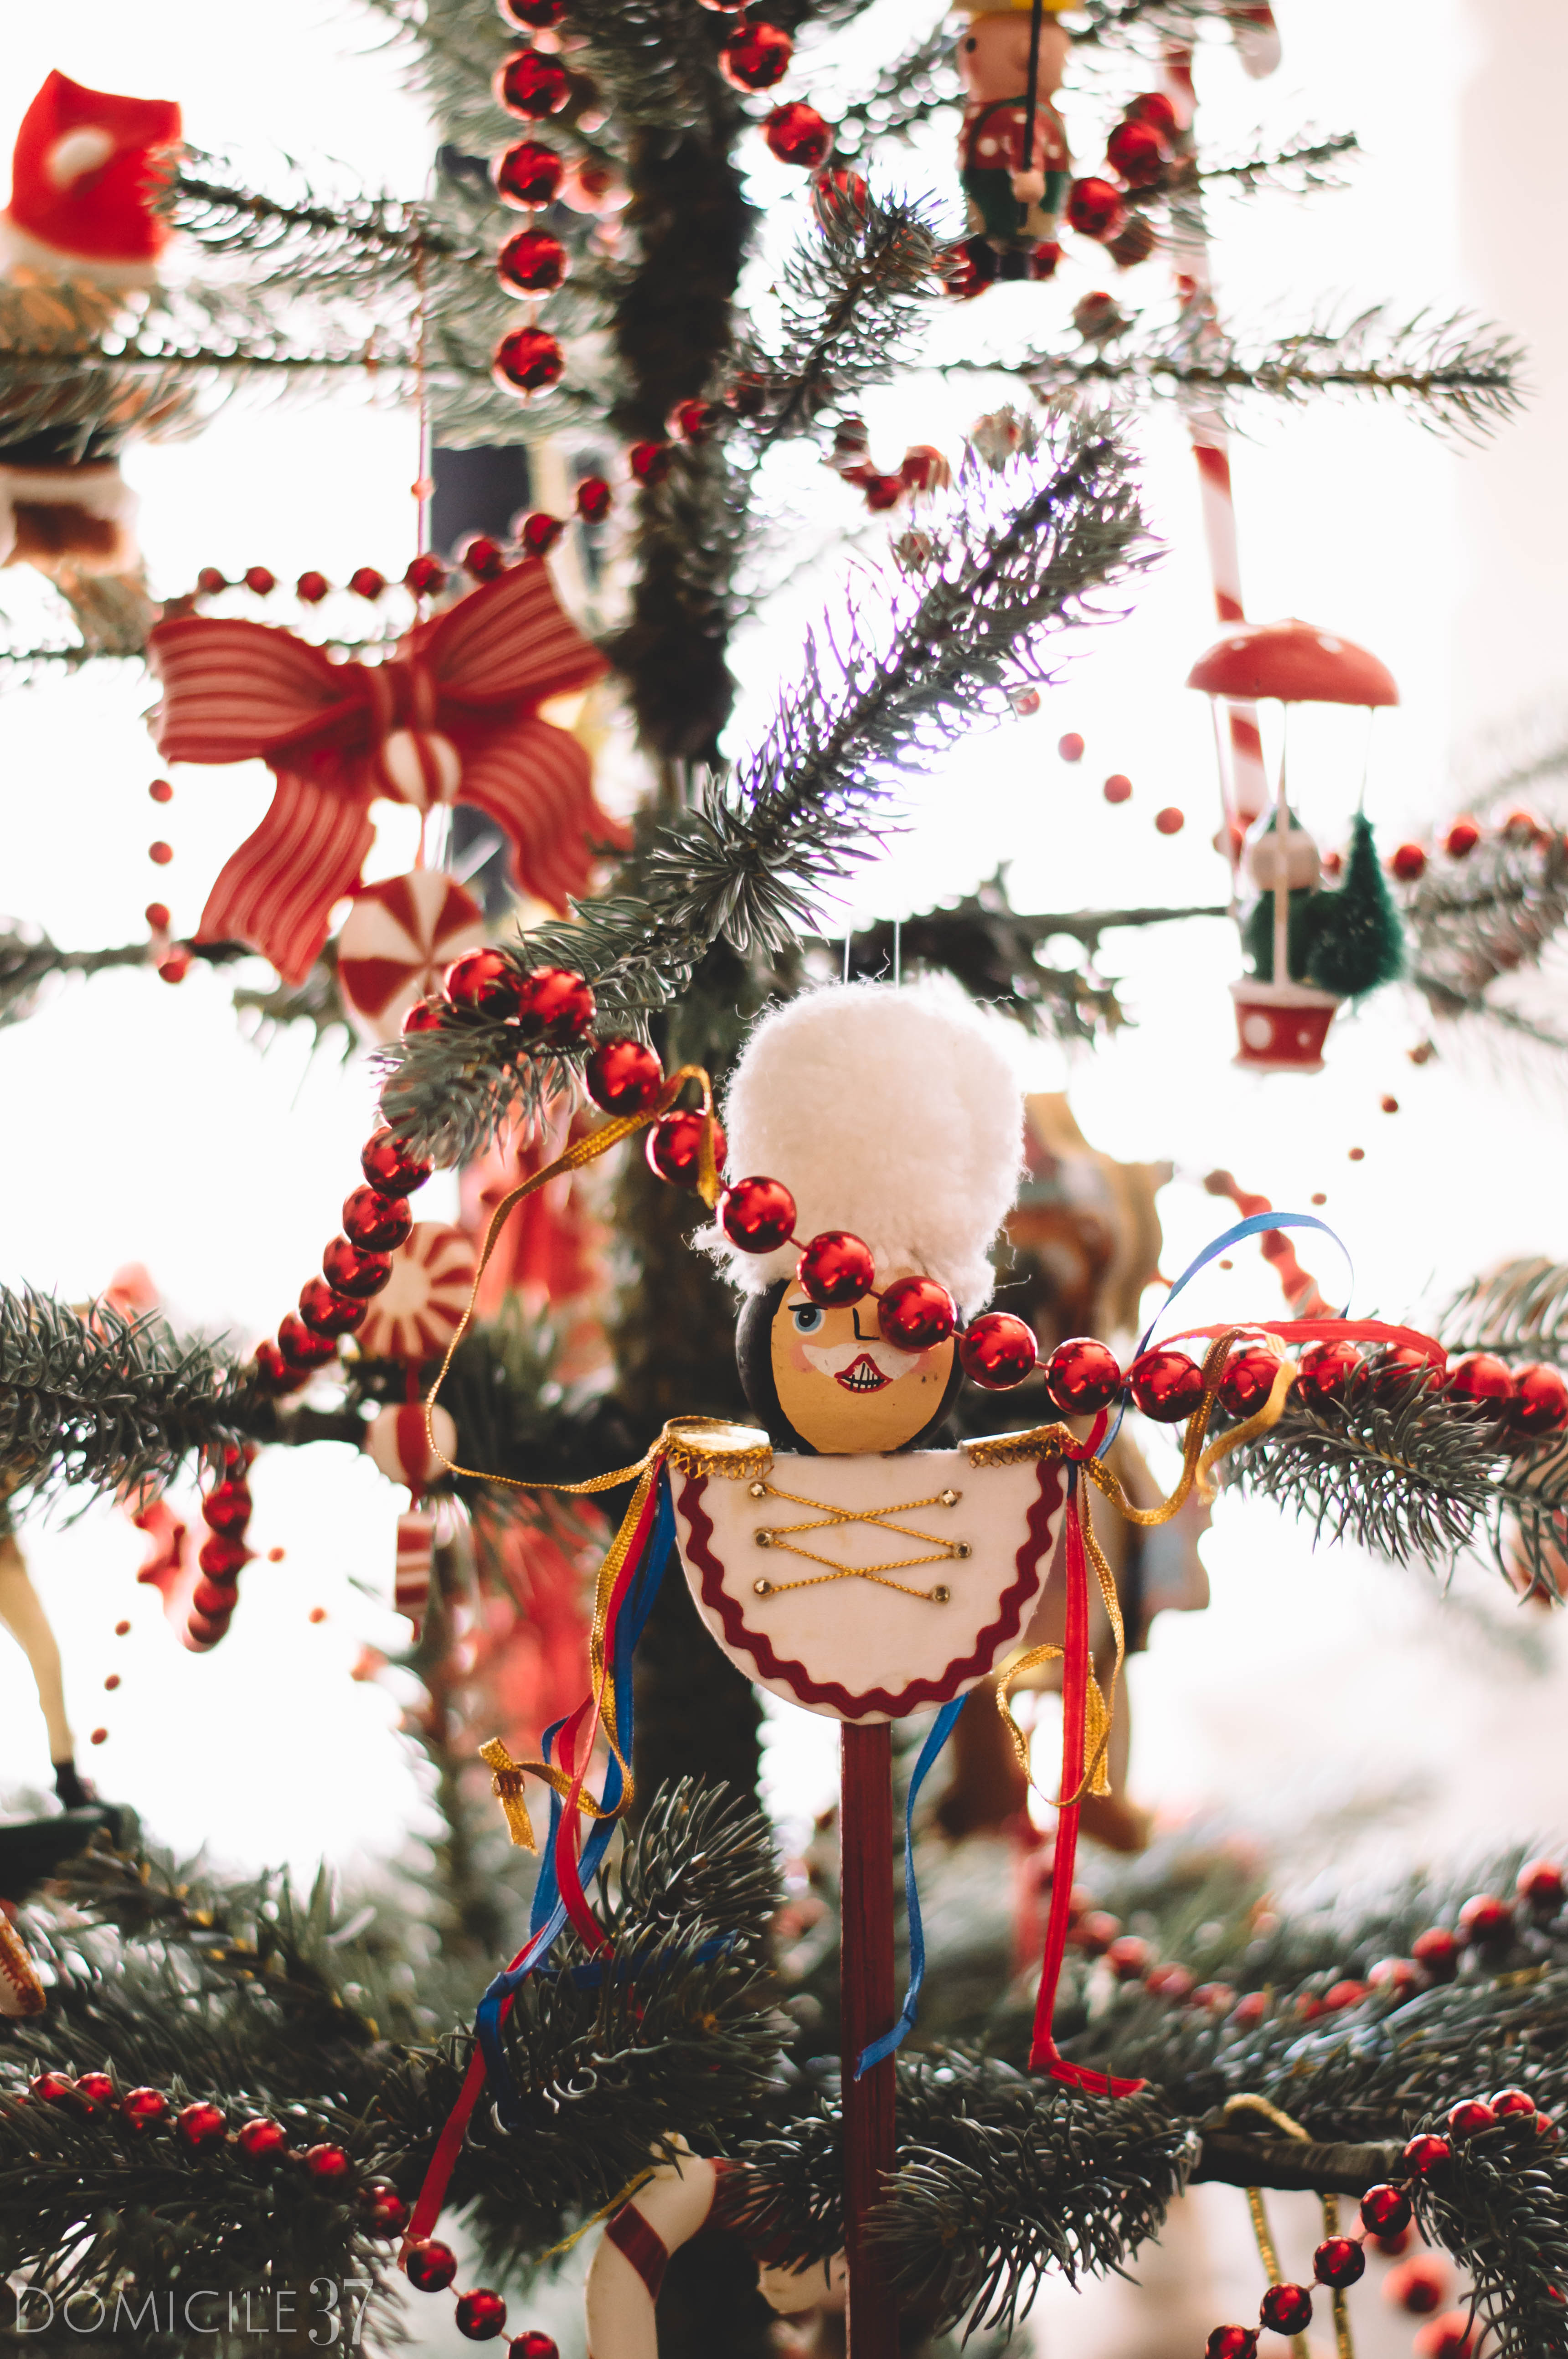 Vintage Ornaments | Thrifted Ornaments | Christmas Tree in bedroom | Toy Soldier ornaments